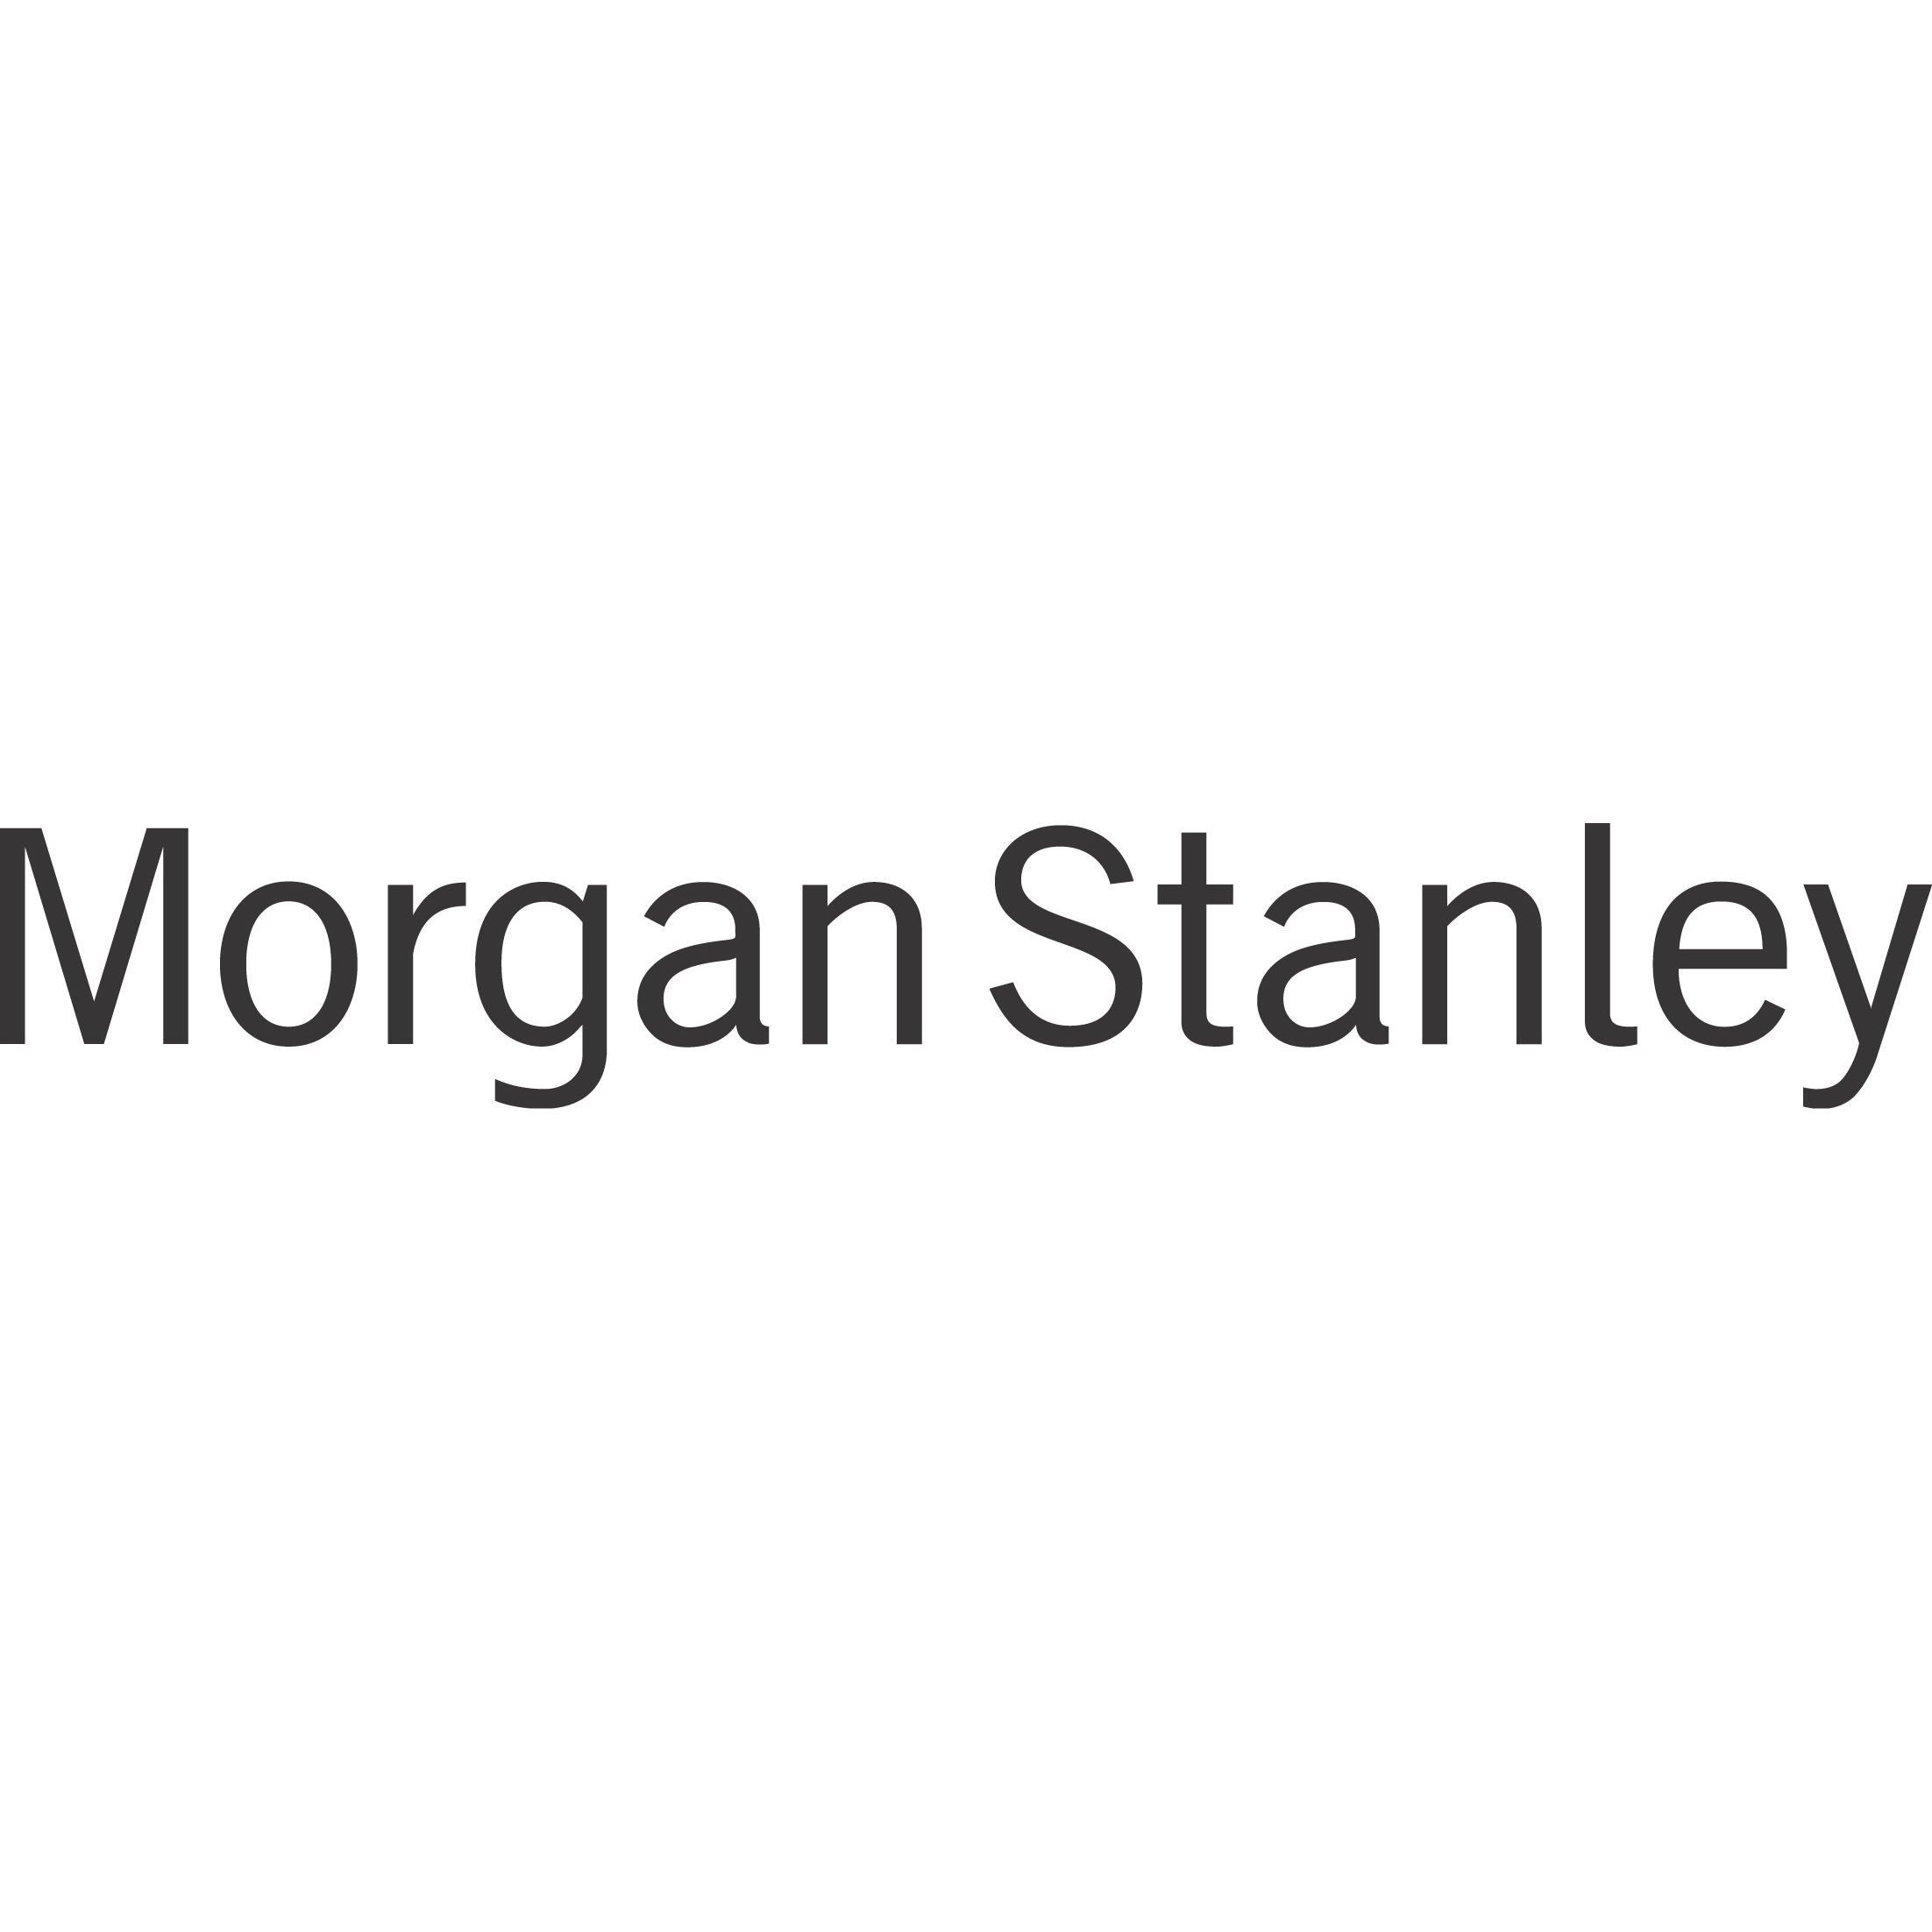 Eric A Overstreet - Morgan Stanley | Financial Advisor in Reno,Nevada